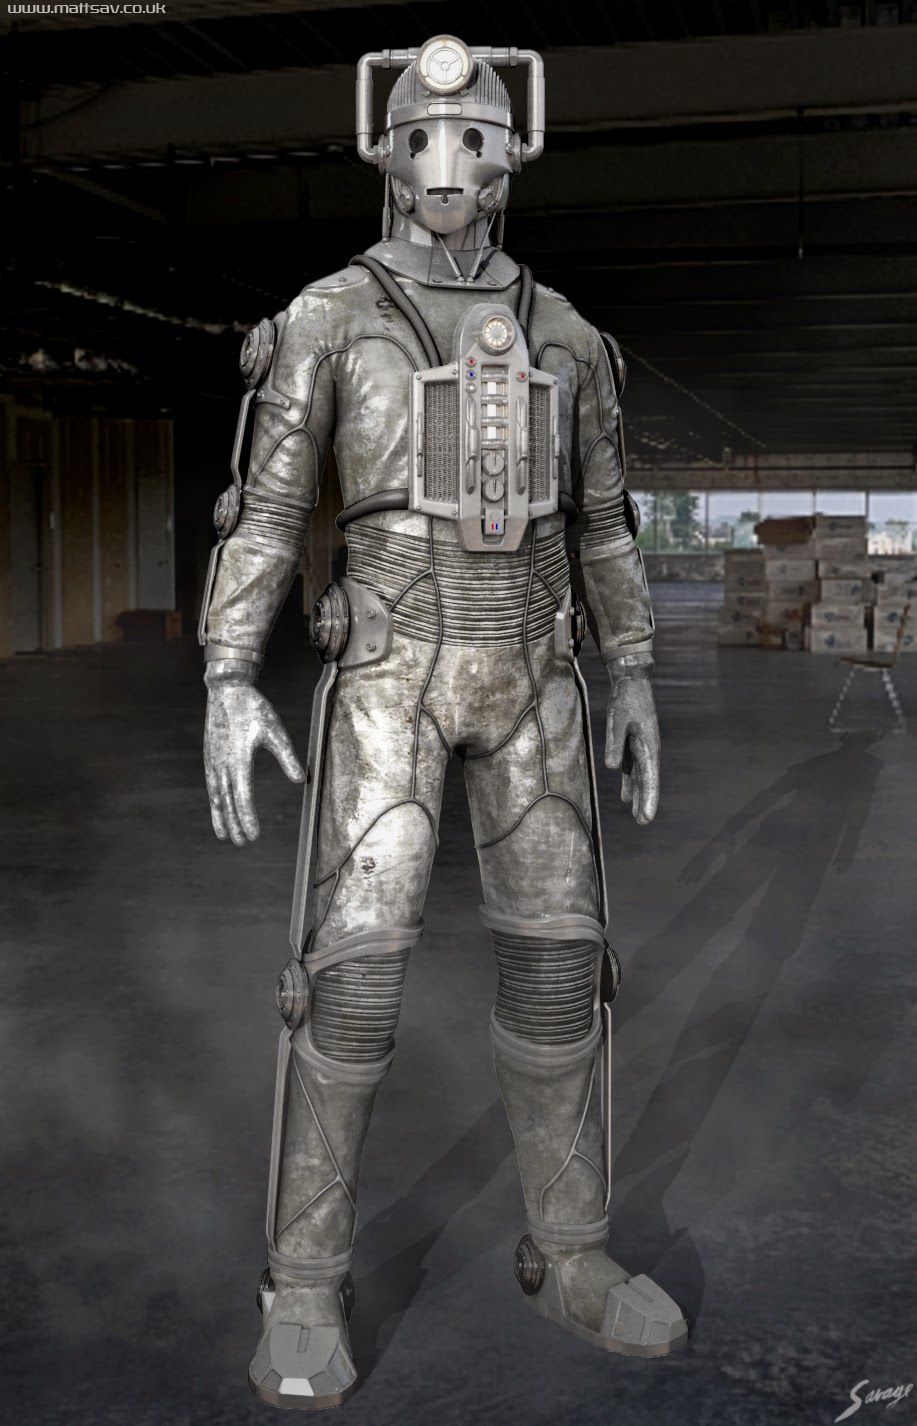 Mattsav Cyberman Re Design